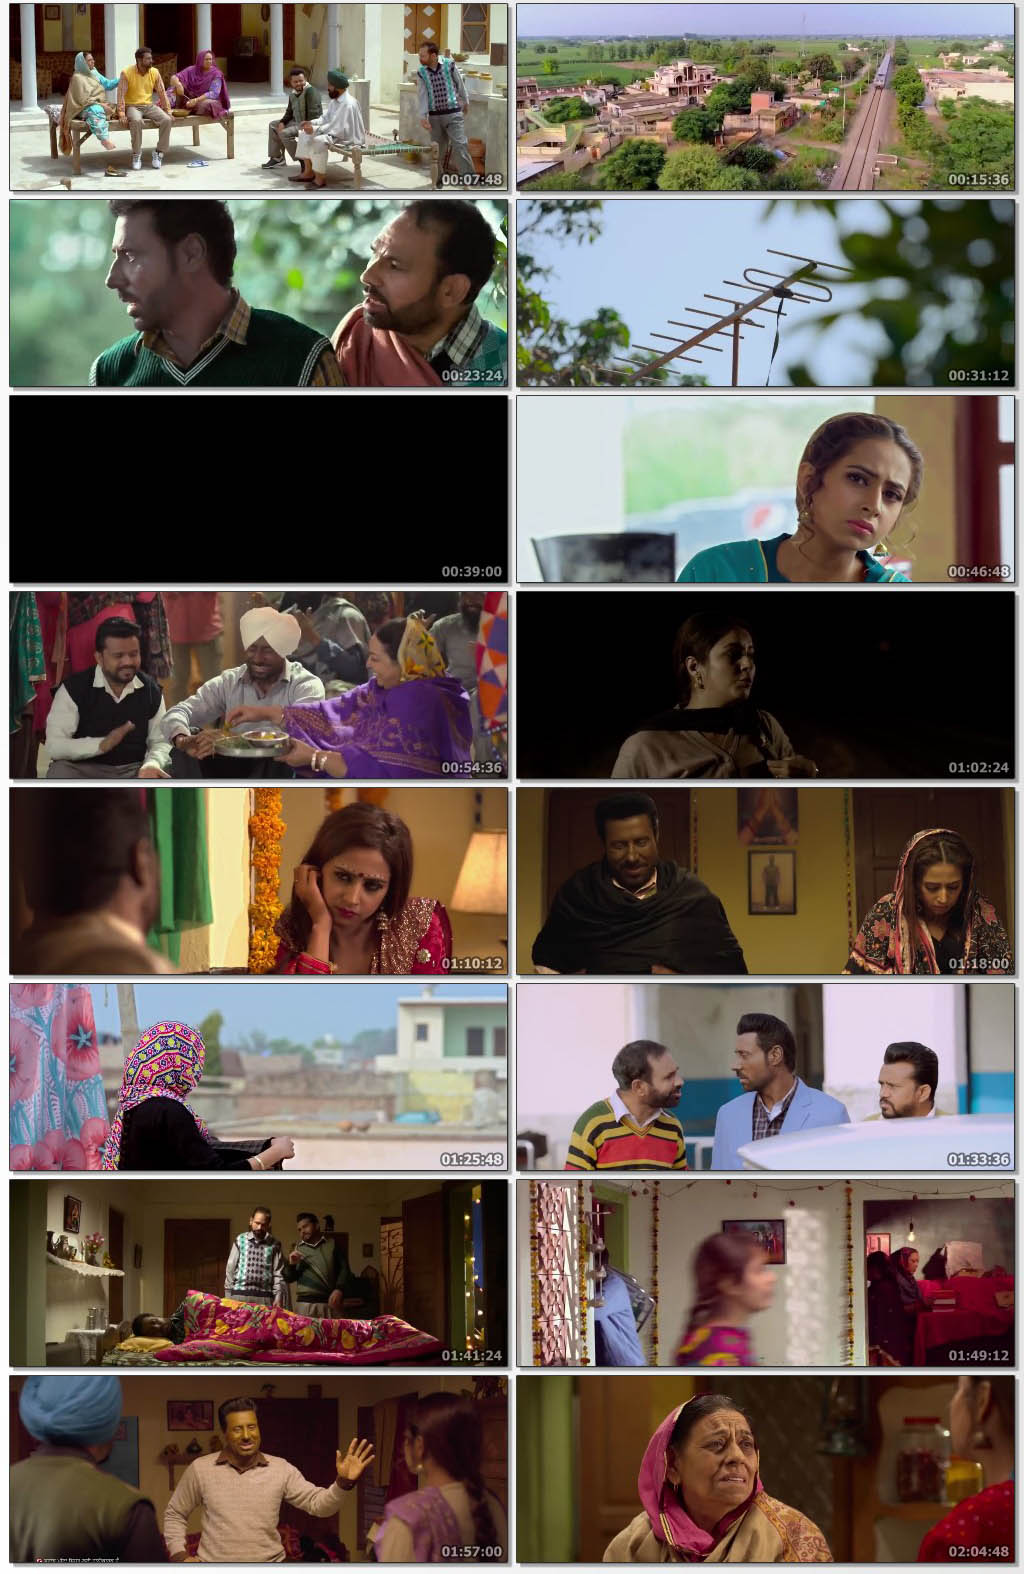 kala shah kala full punjabi movie download